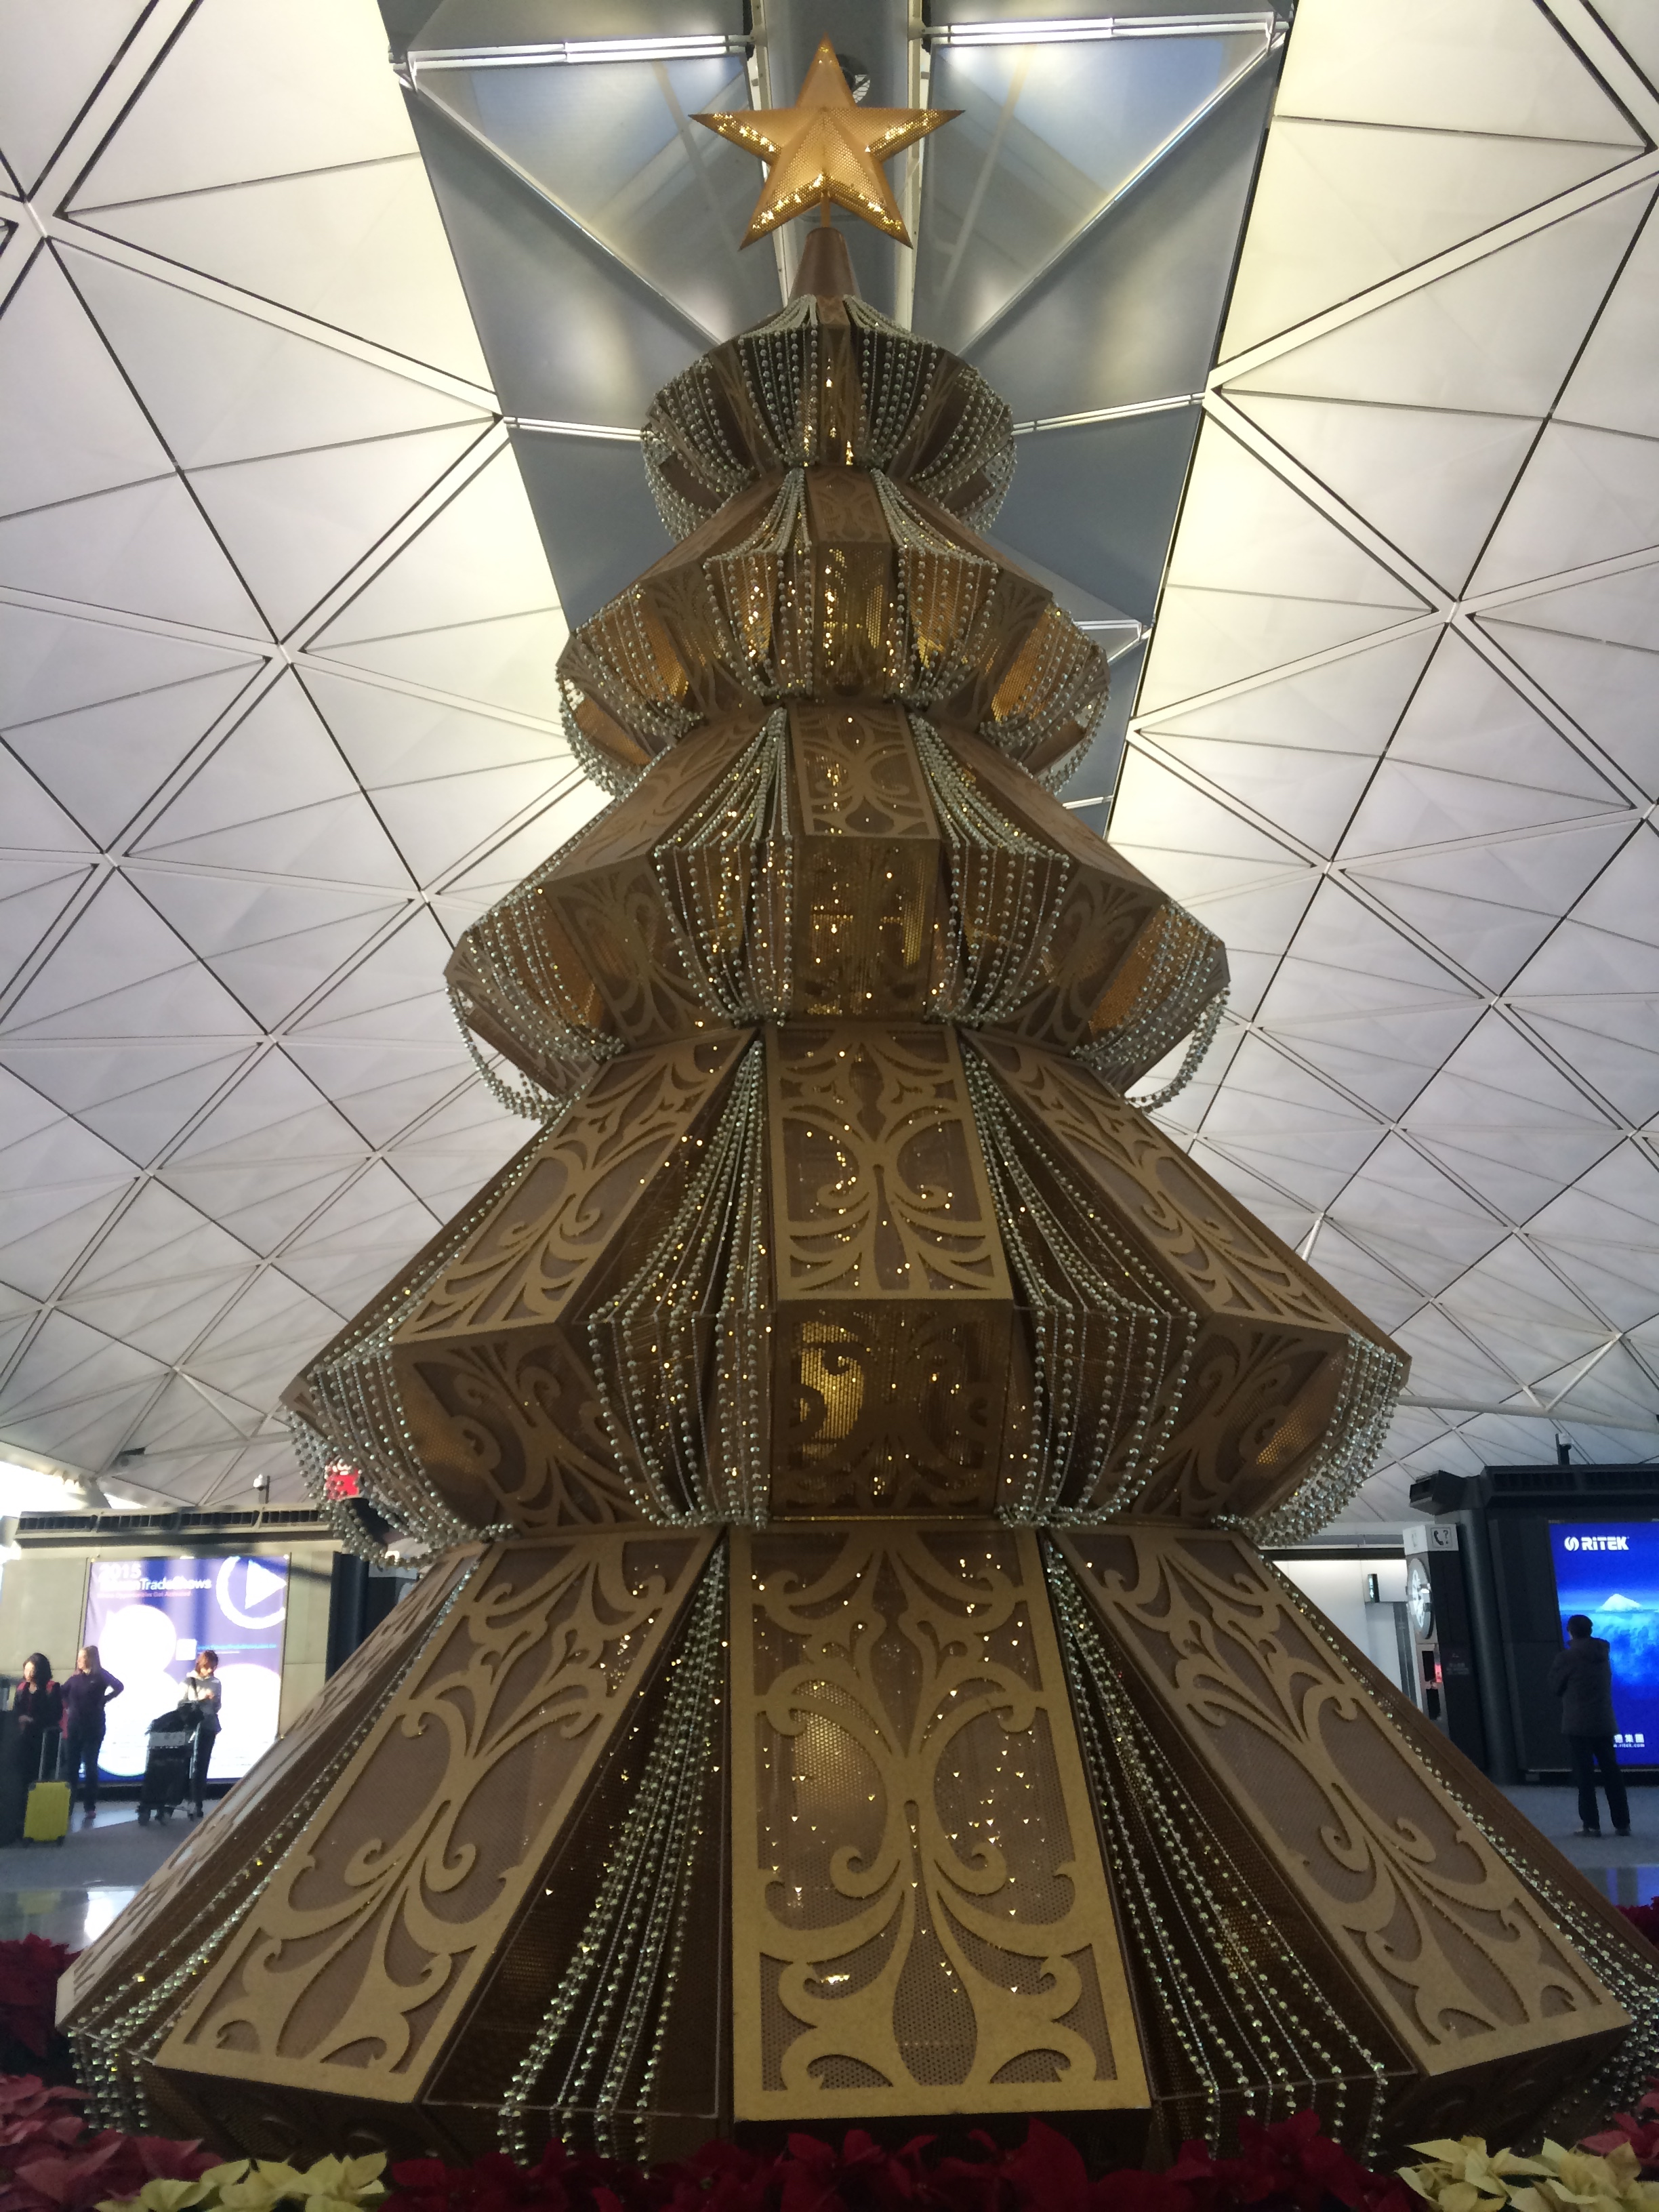 The Hong Kong International Airport was beautifully decorated for the holidays.